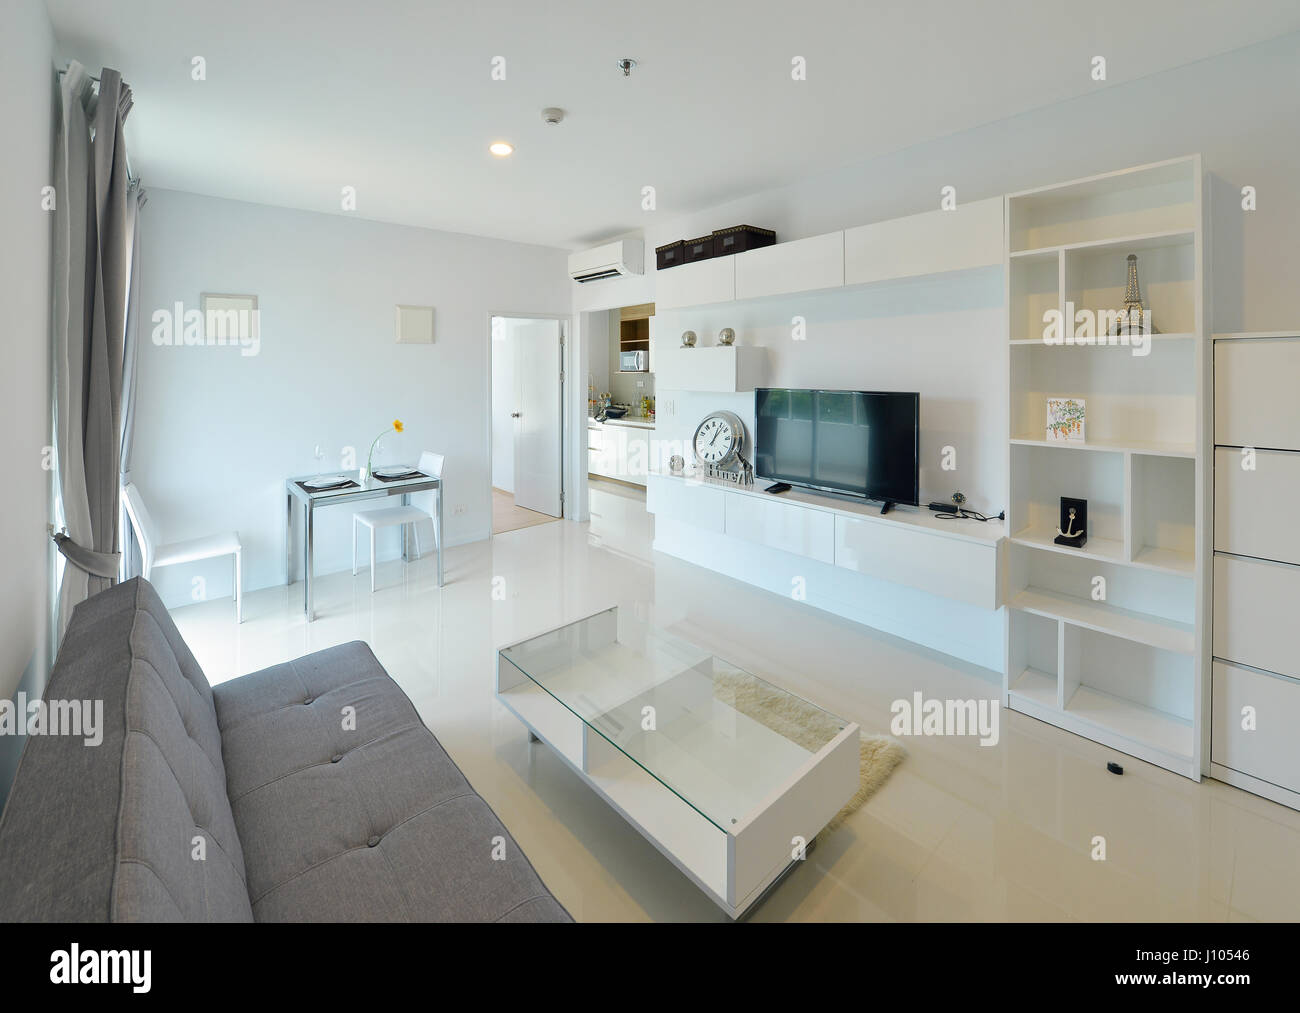 White Luxury Modern Living Interior And Decoration Interior Design Stock Photo Alamy,High End Designer Bags